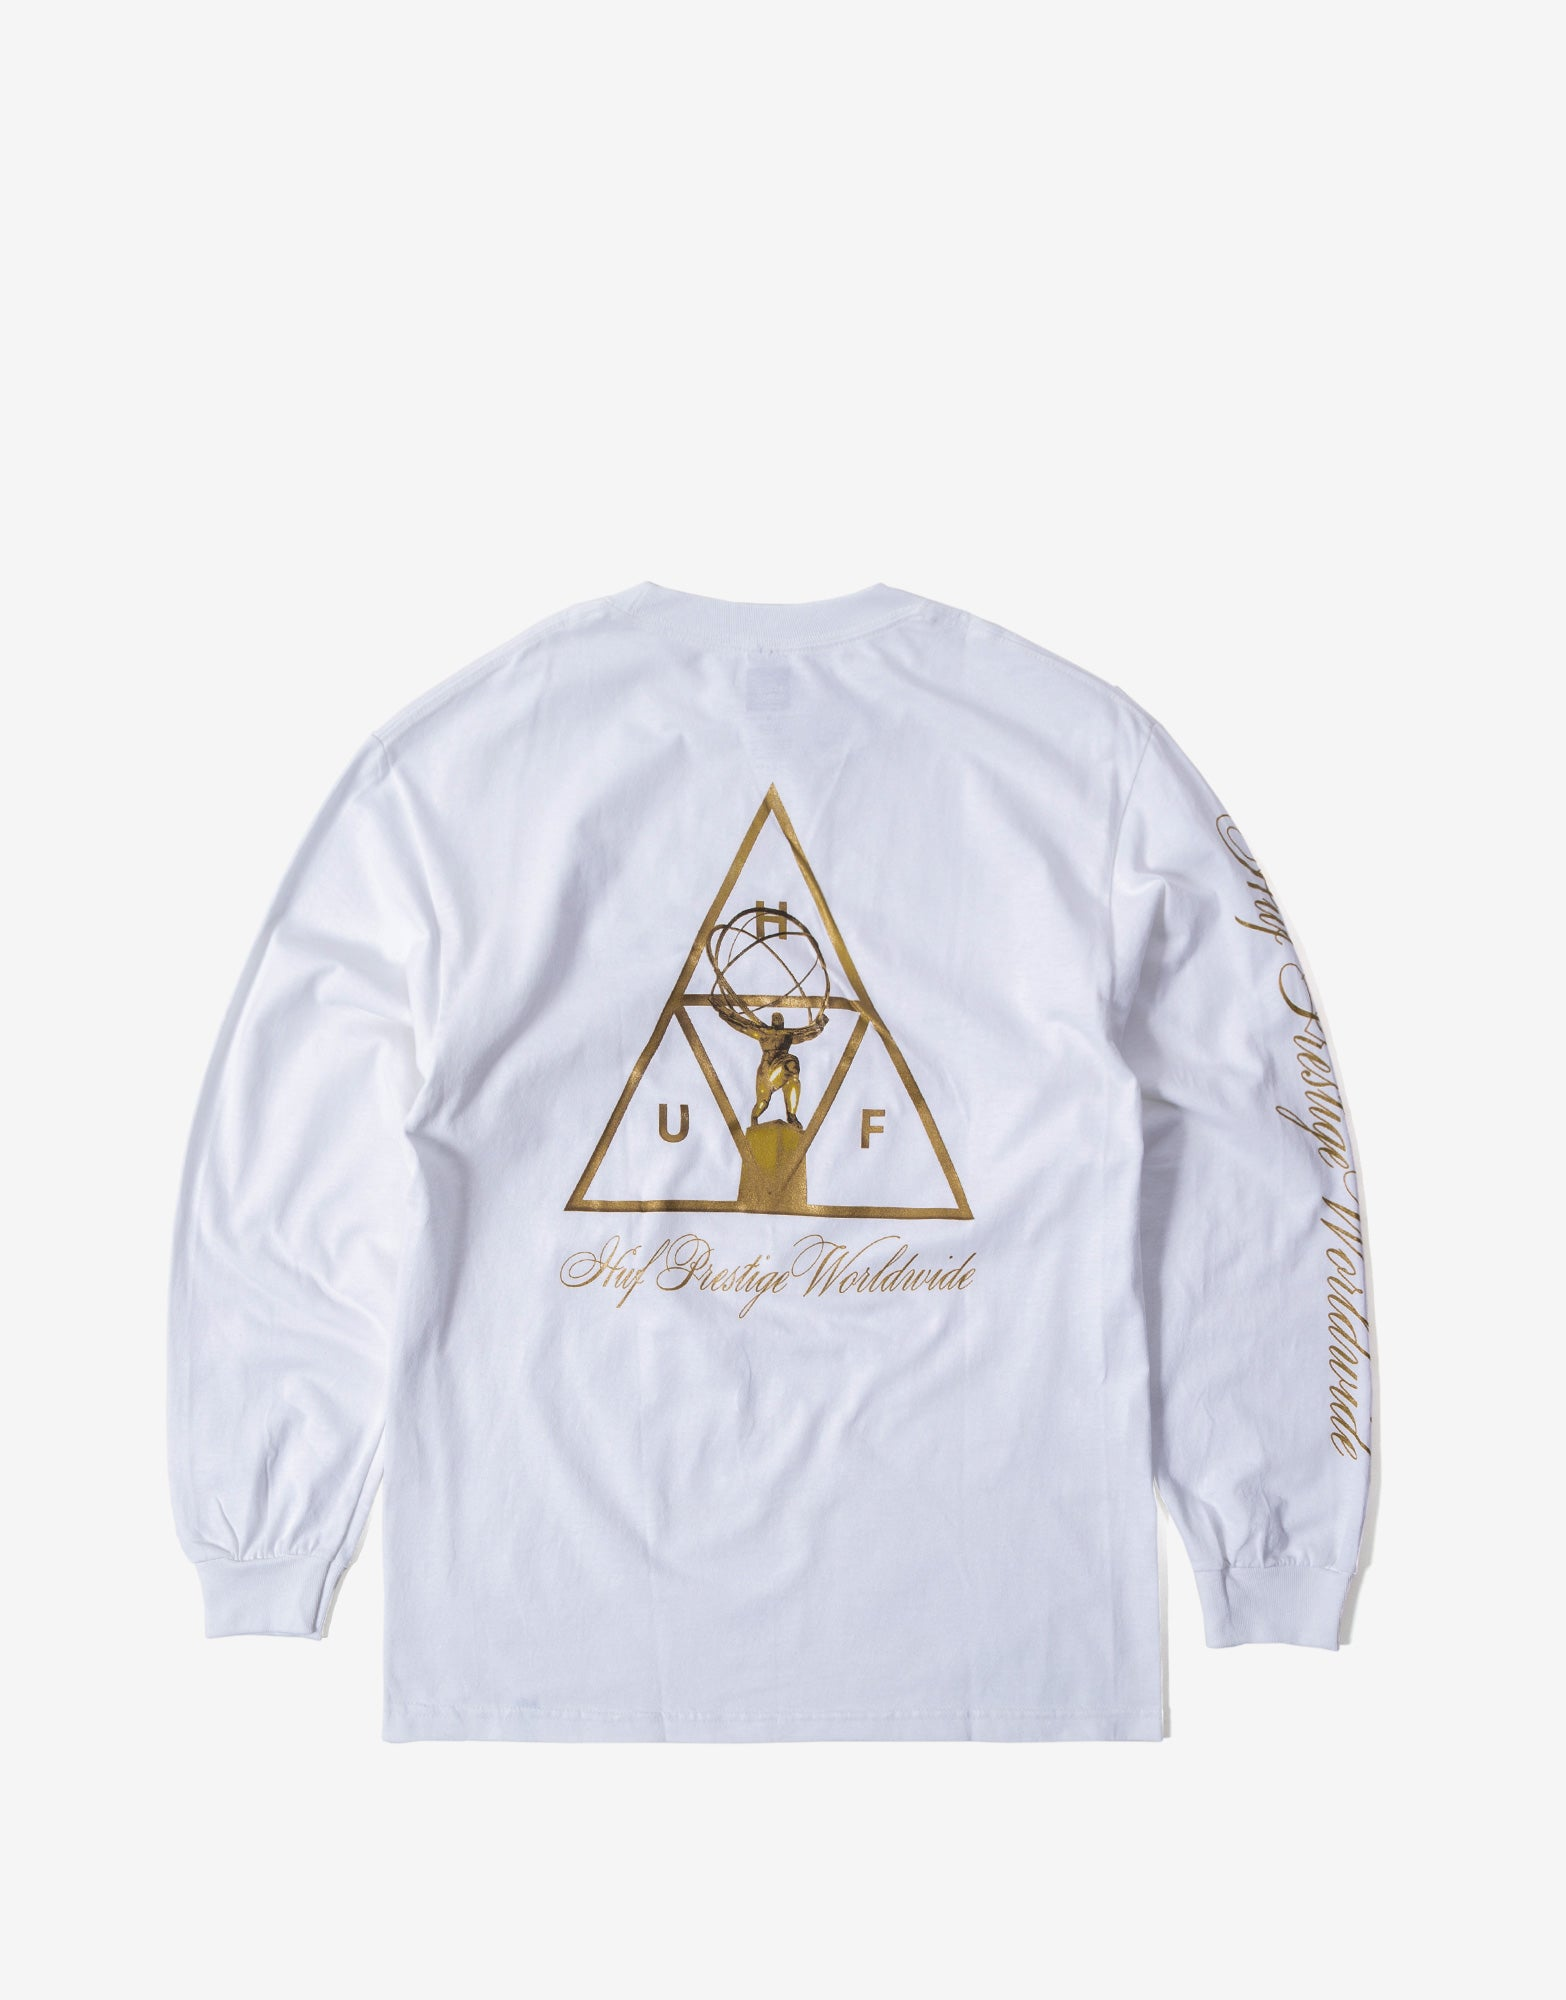 HUF Prestige TT Long Sleeve T Shirt - White